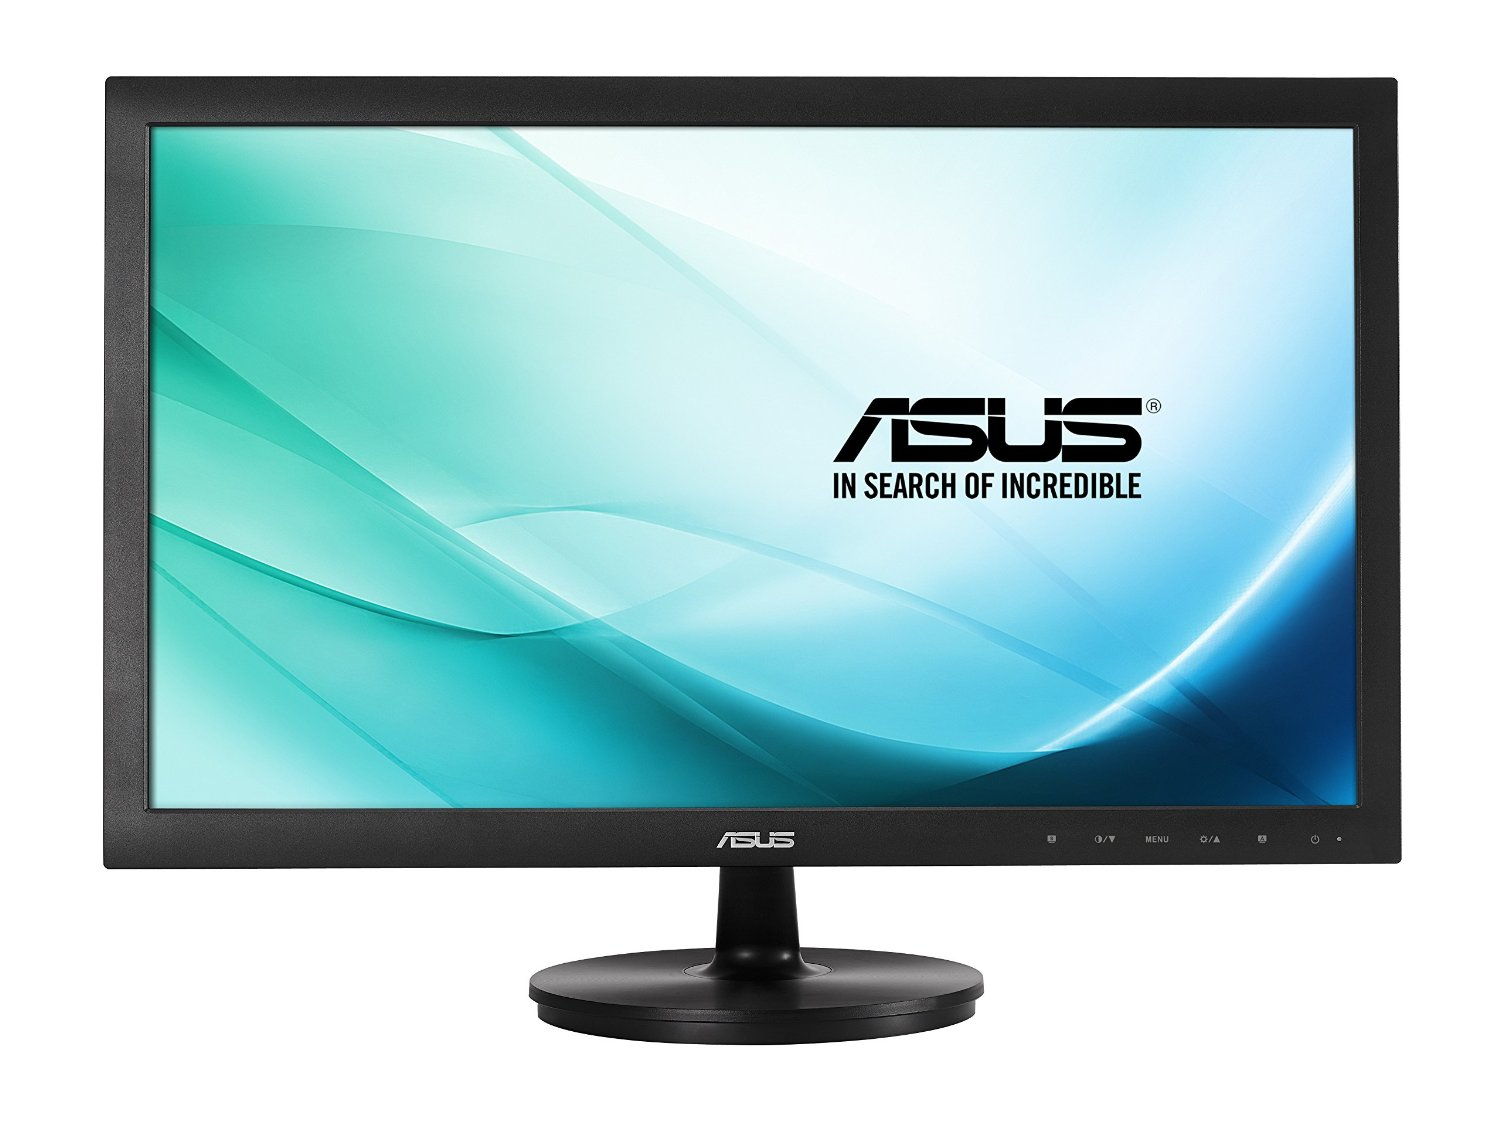 Refurbished - Asus VS247H-P 23.6 LED Backlight Widescreen LCD Monitor 300cd/m2 50000000:1